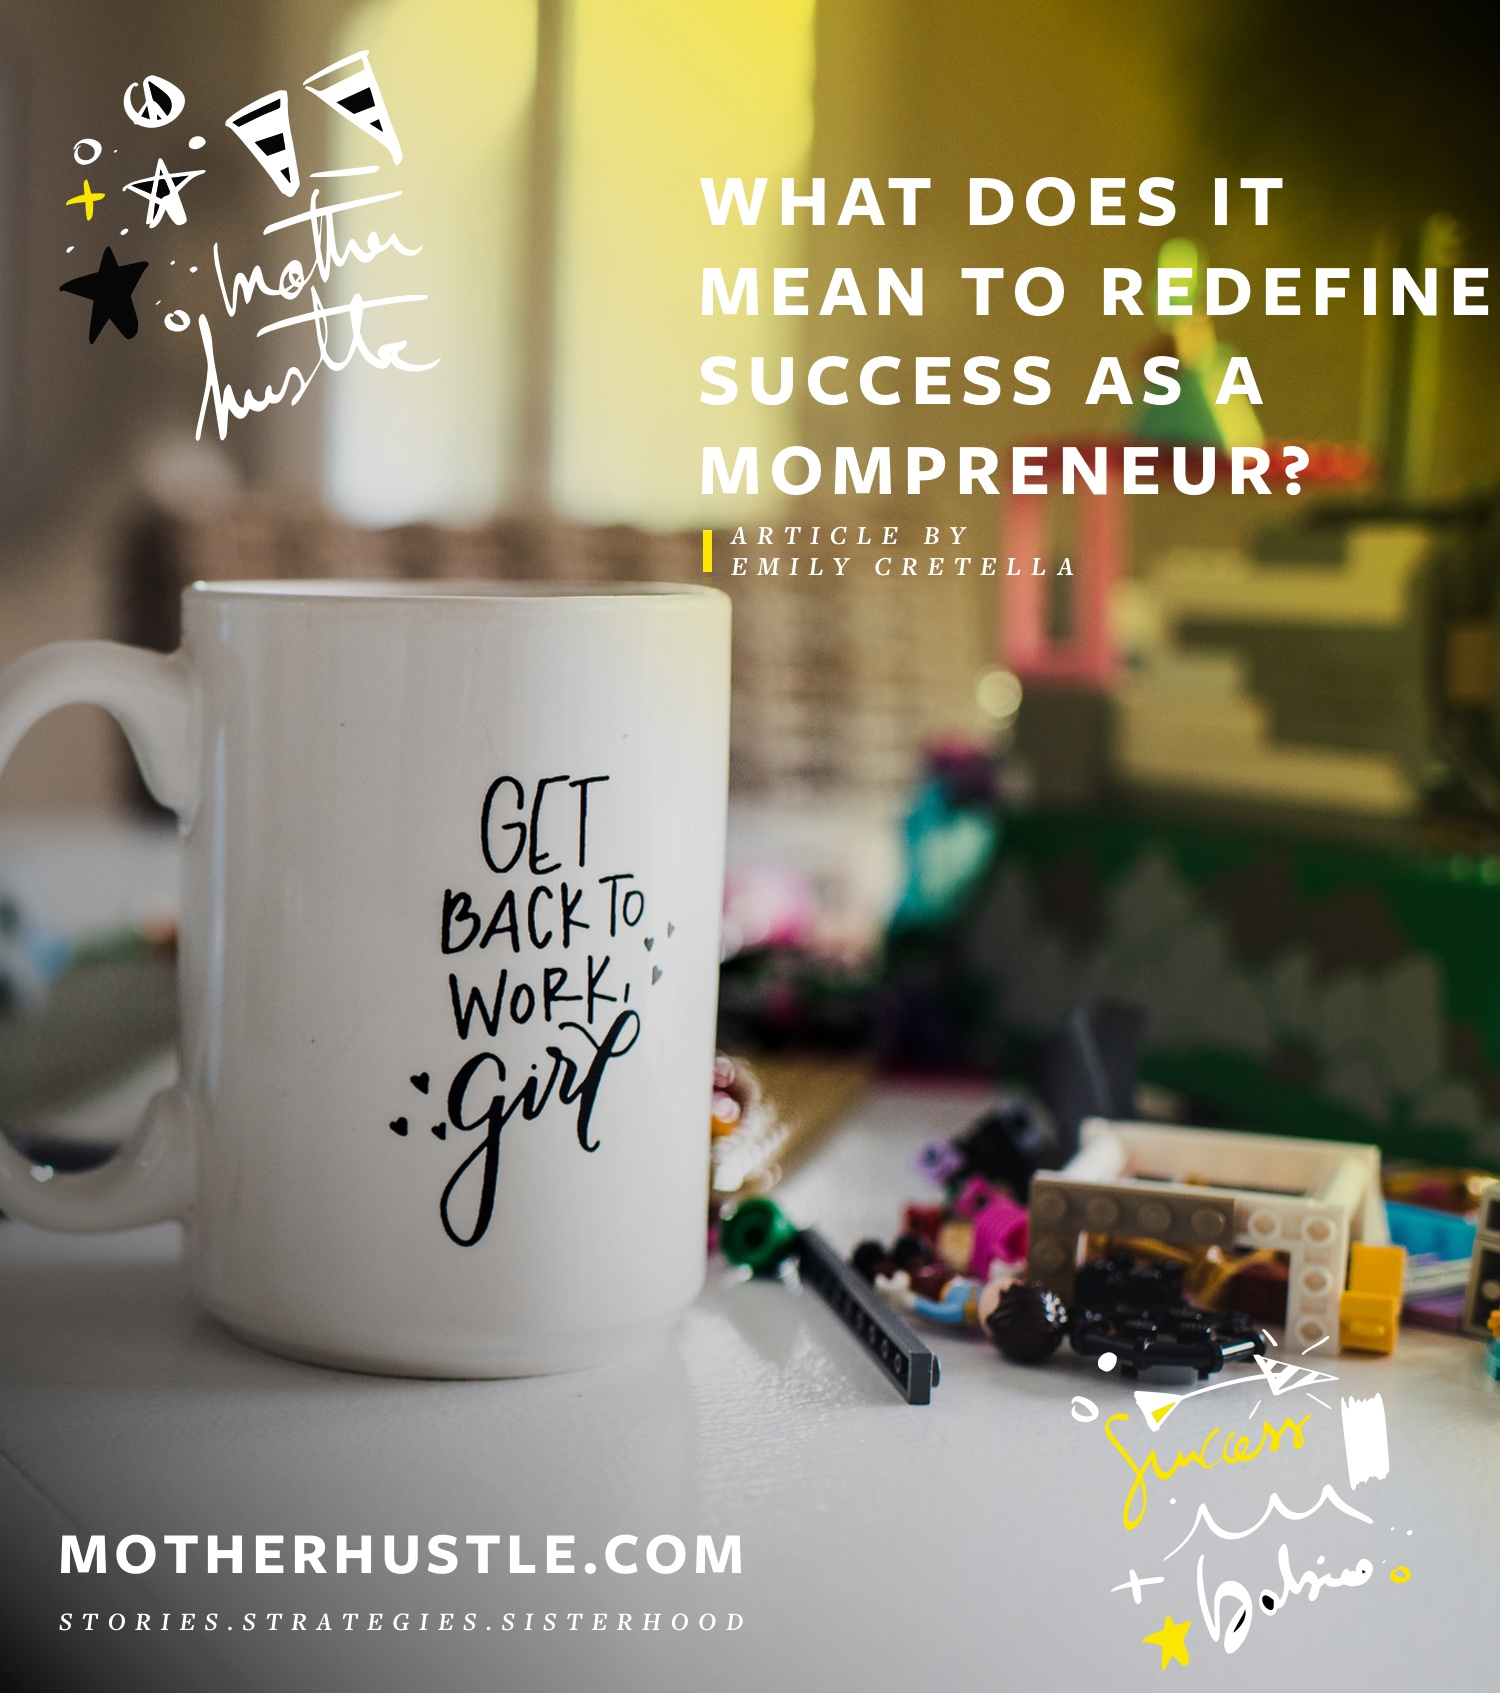 What Does It Mean to Redefine Success as a Mompreneur? by Emily Cretella for MotherHustle